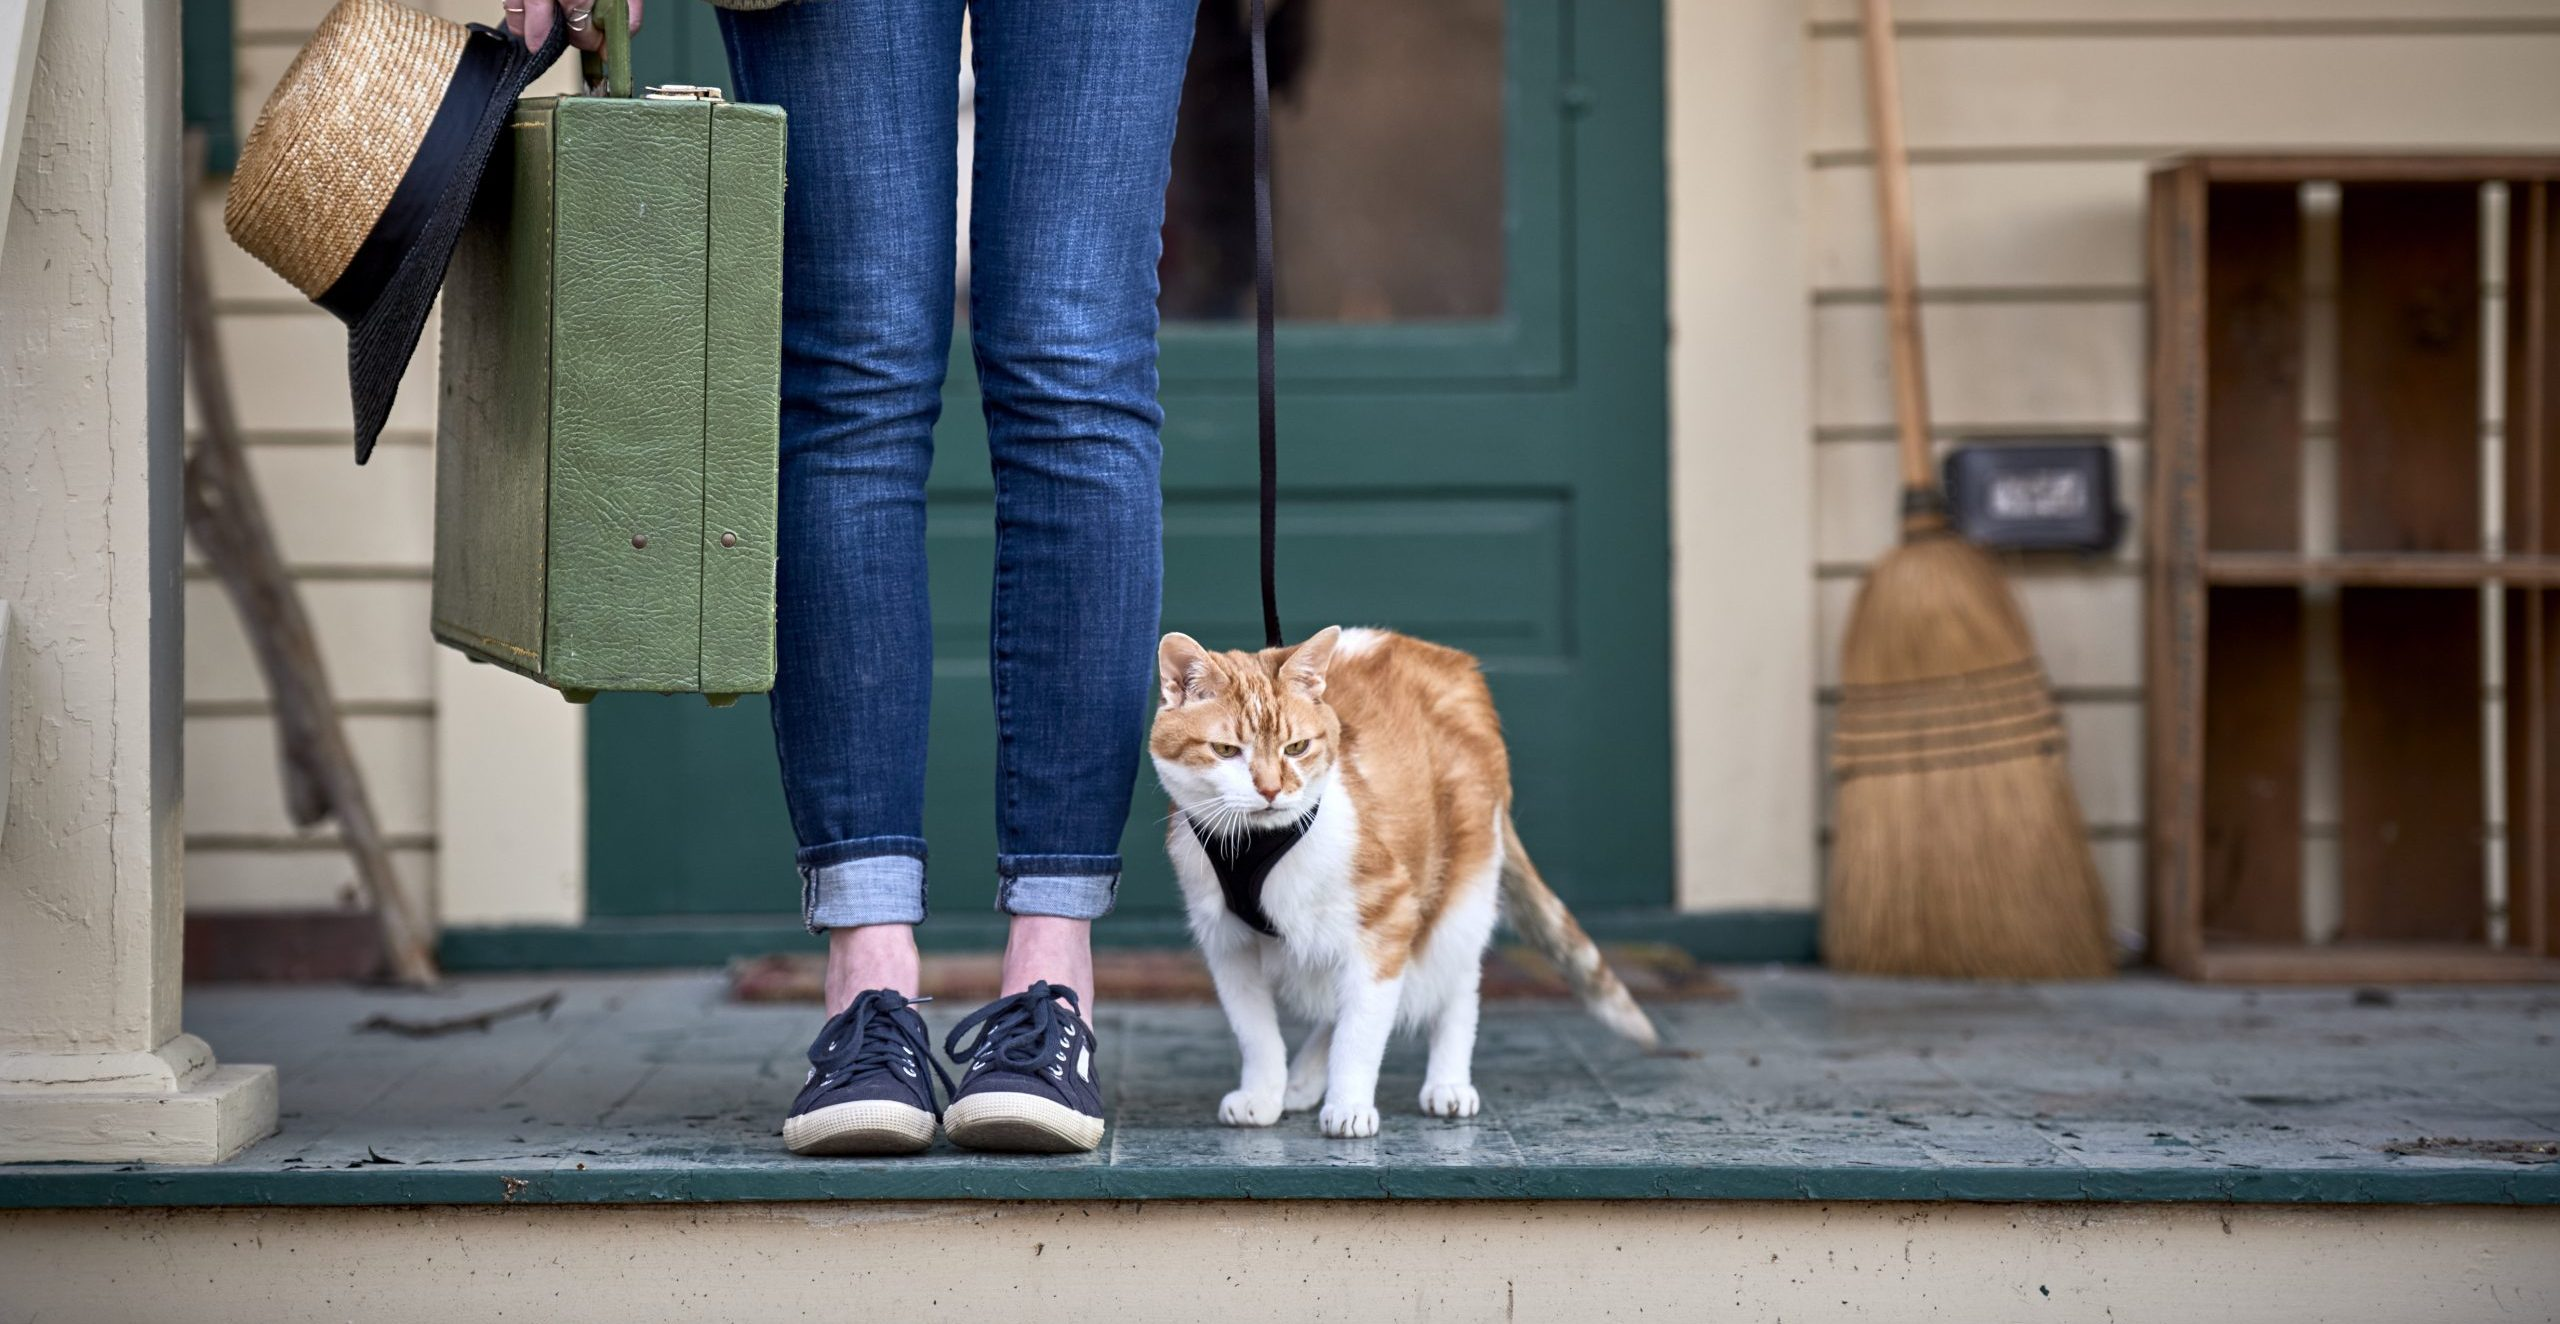 Girl with suitcase and cat